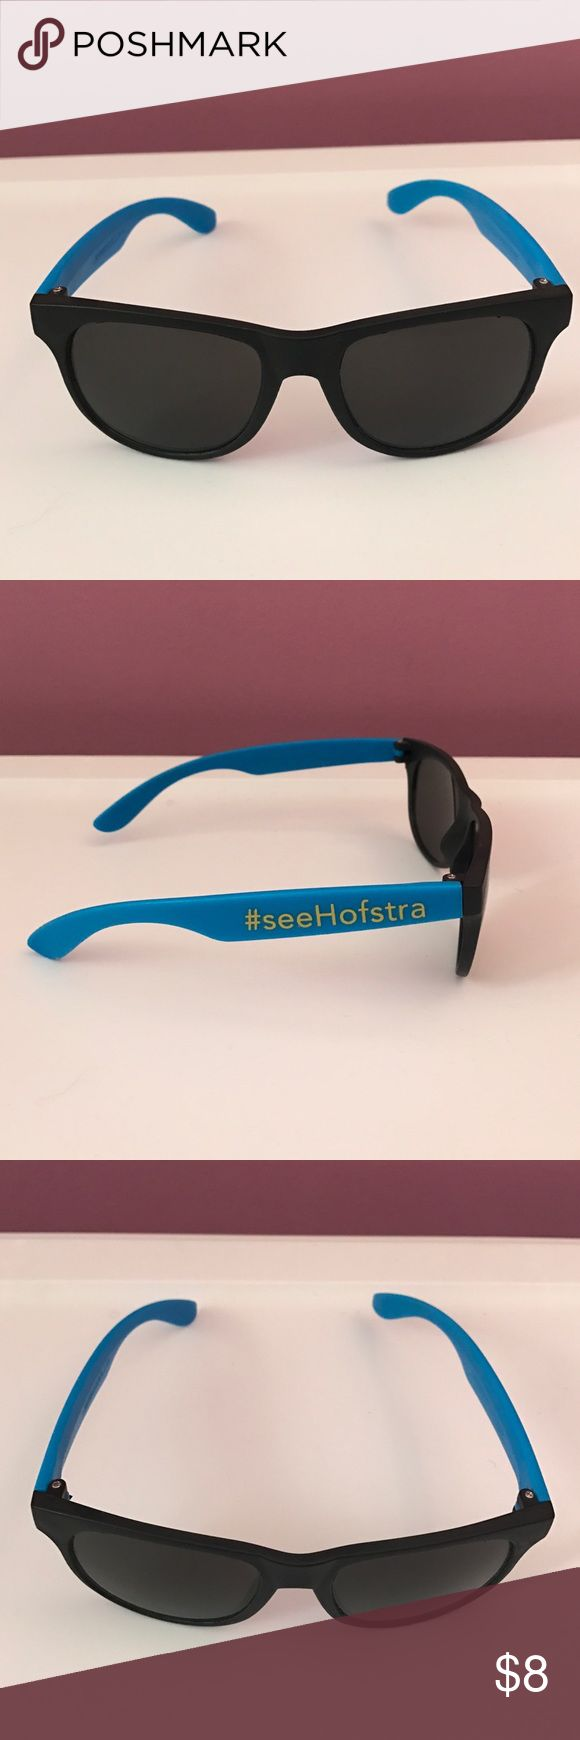 Hofstra University Sunglasses Blue/Yellow/Black authentic sunglasses in great condition Accessories Glasses